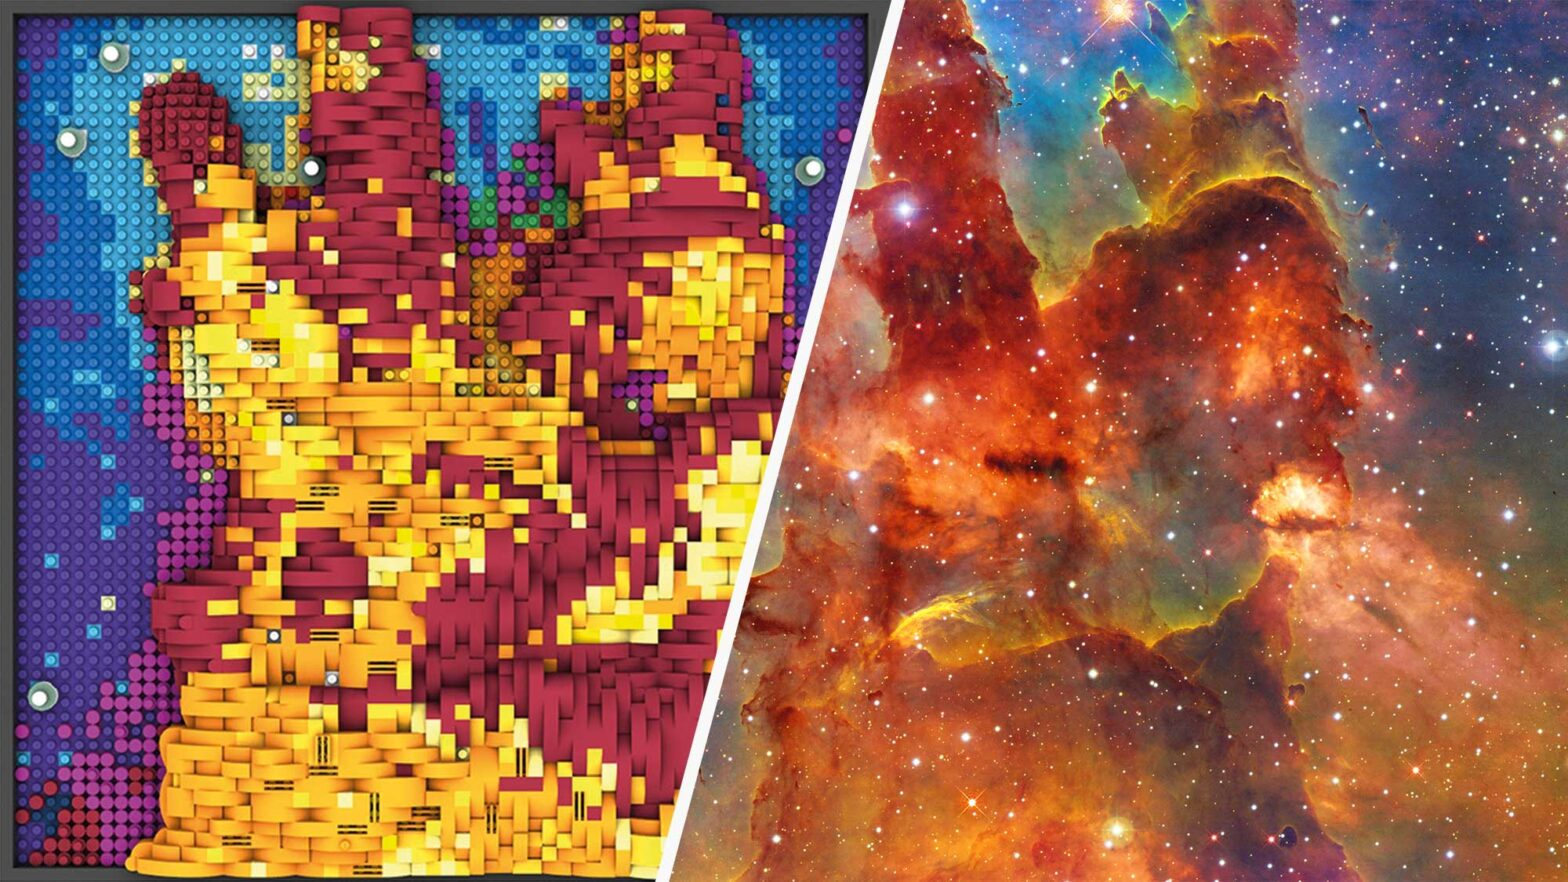 Images From Hubble Space Telescope in LEGO